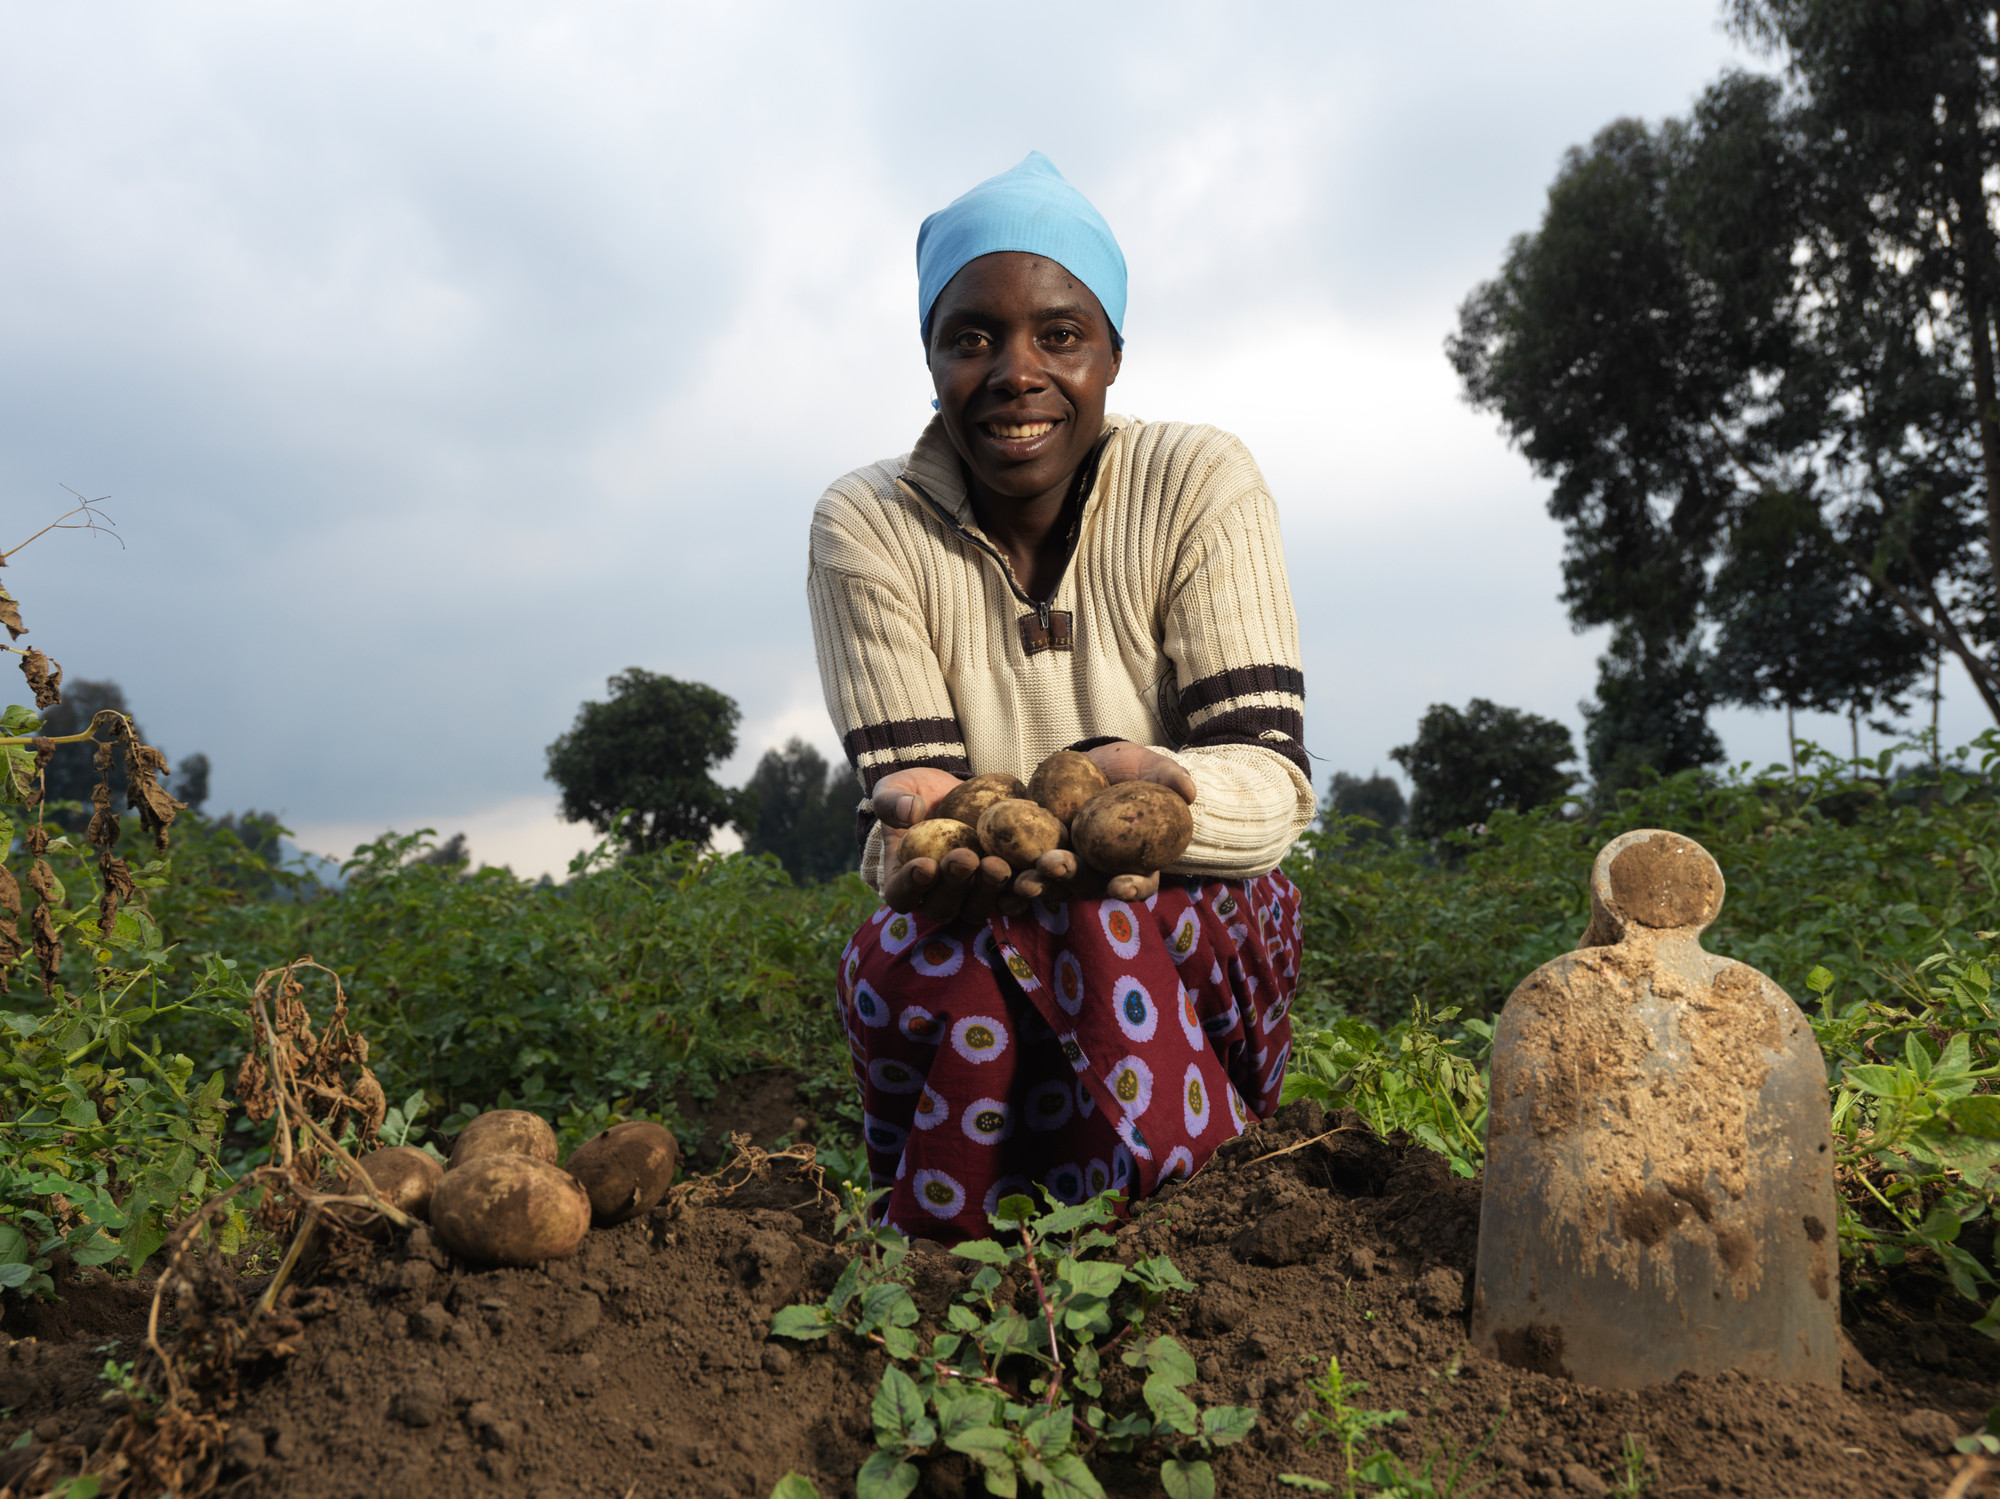 A woman kneels in a field and holds a handful of potatoes towards the camera.